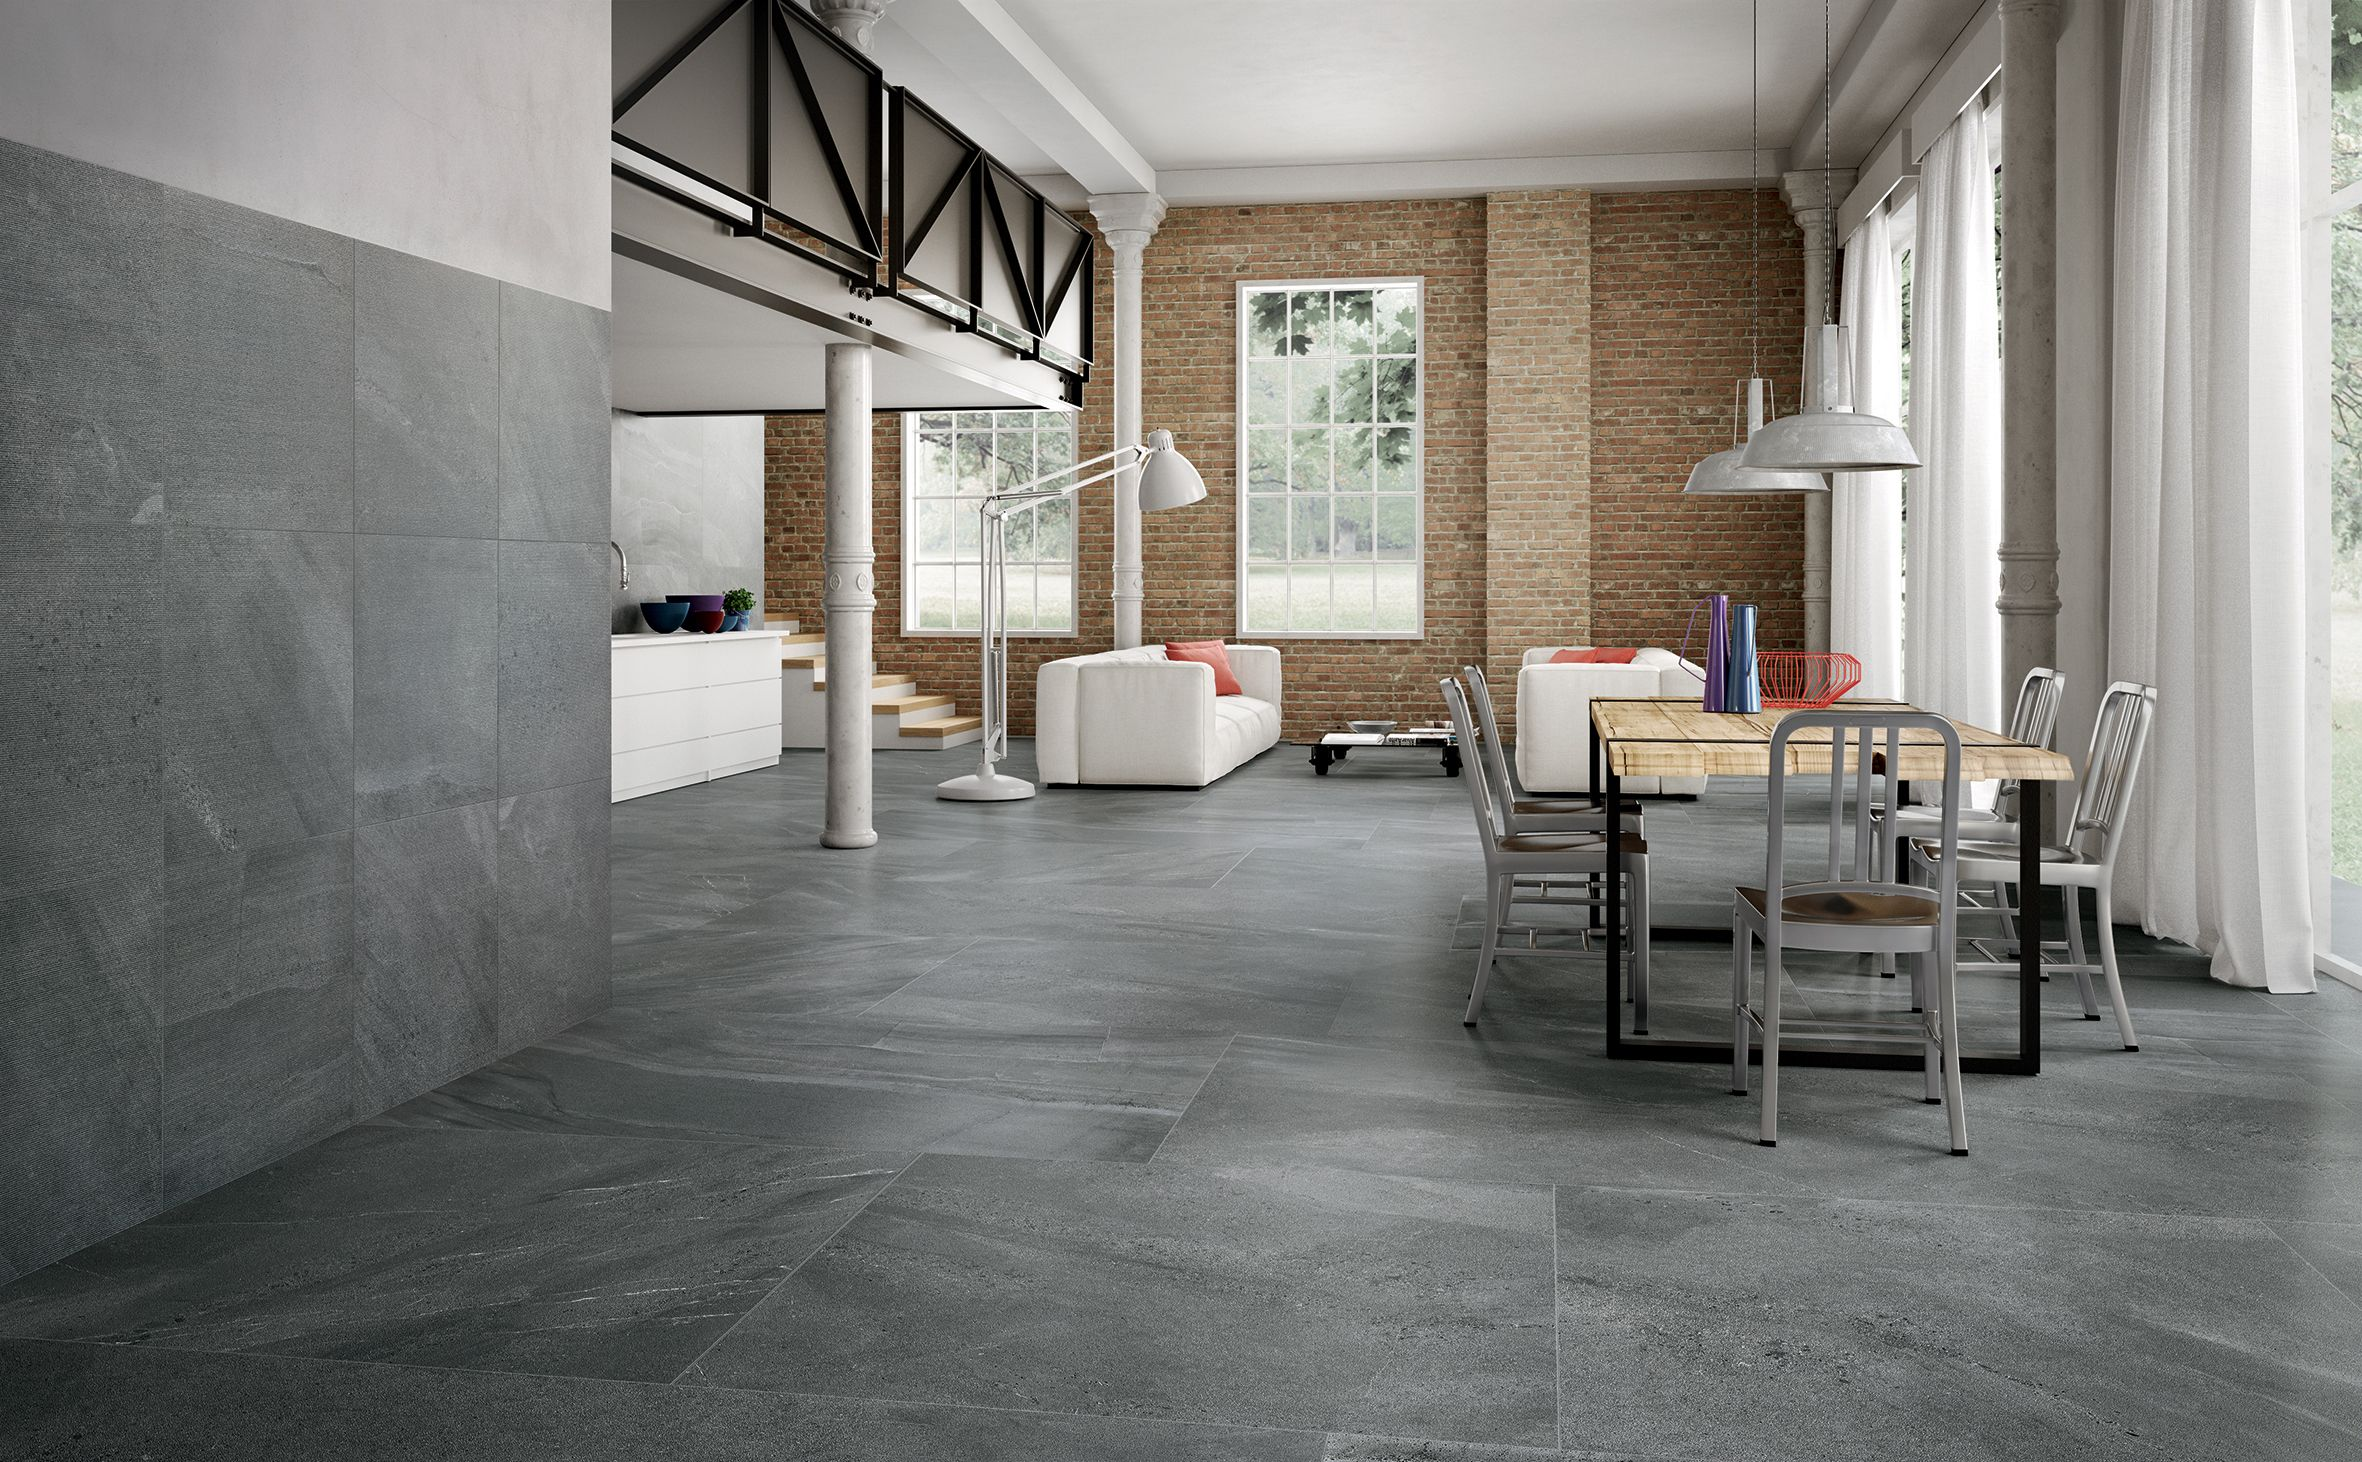 Open space architecture and minimalist design are protagonist of Portraits - Kirkby inspiration. #kirkby #england #liverpool #interiordesign #minimalism #architecture #design #surfaces #stone #inspirations #ceramichecaesar #caesarceramics #livingroom #kit